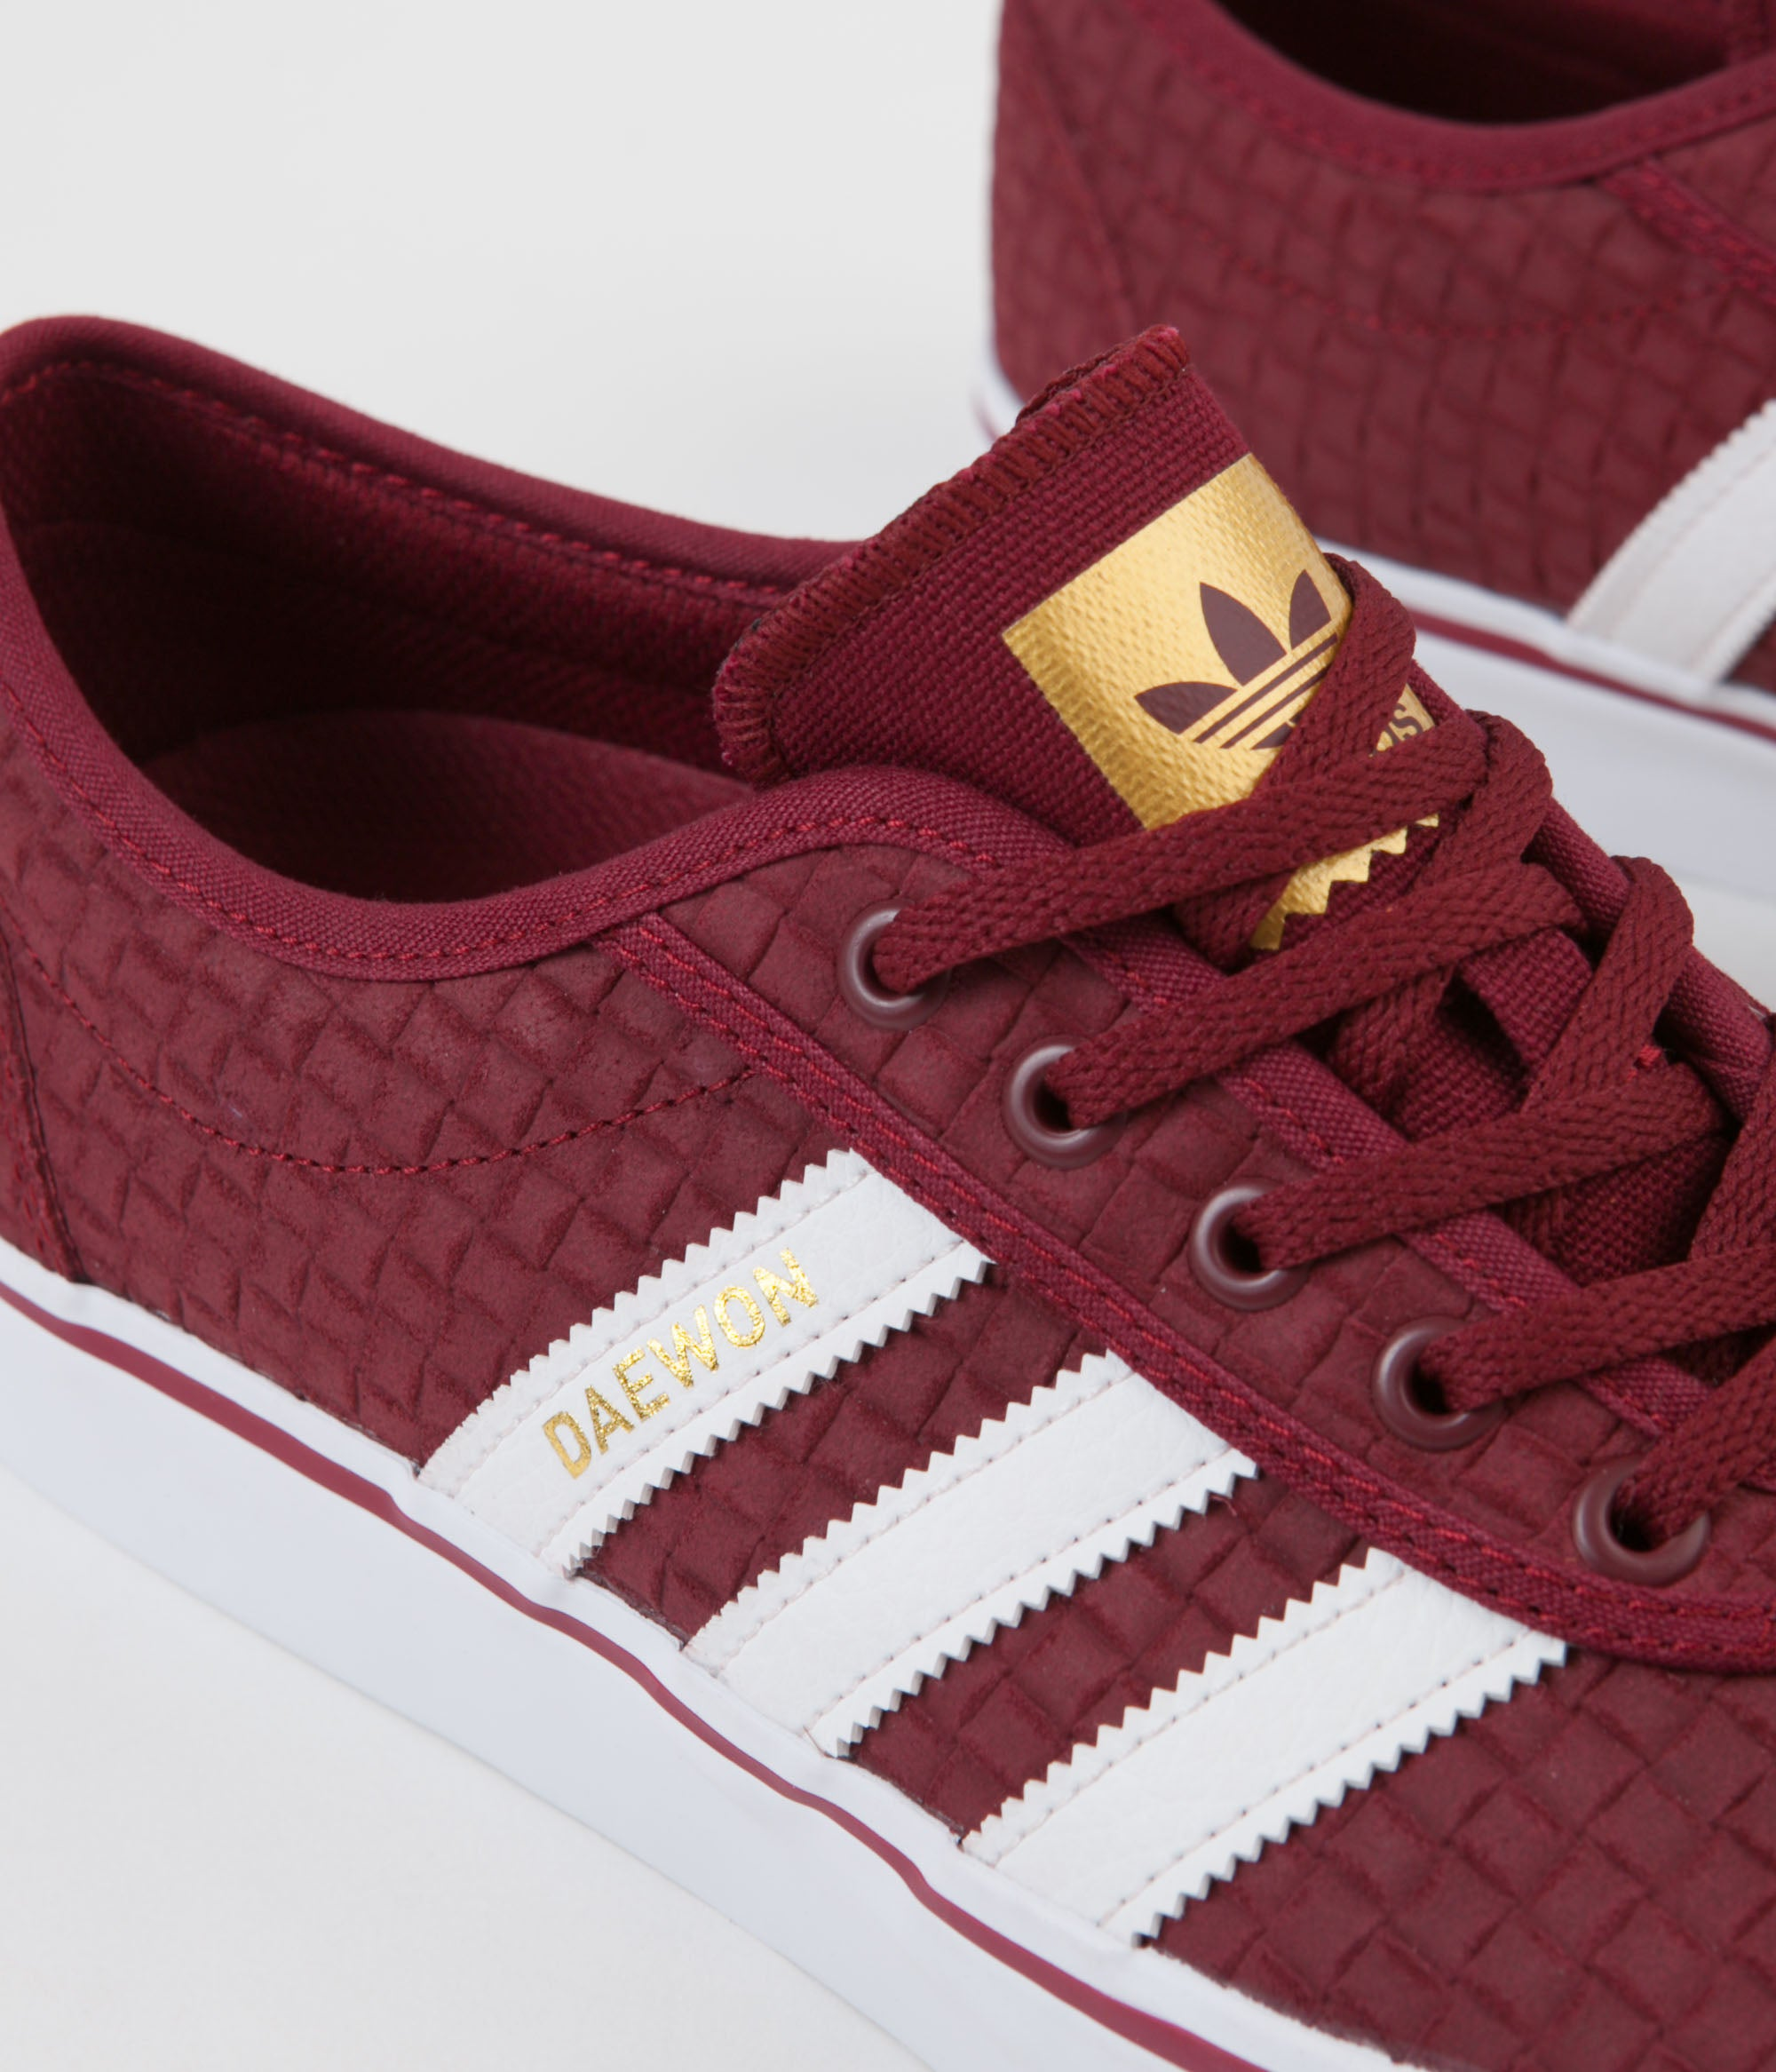 sale retailer fa6e5 c035e ... Adidas x Daewon Adi-Ease Shoes - Collegiate Burgundy   White   Gold  Metallic ...